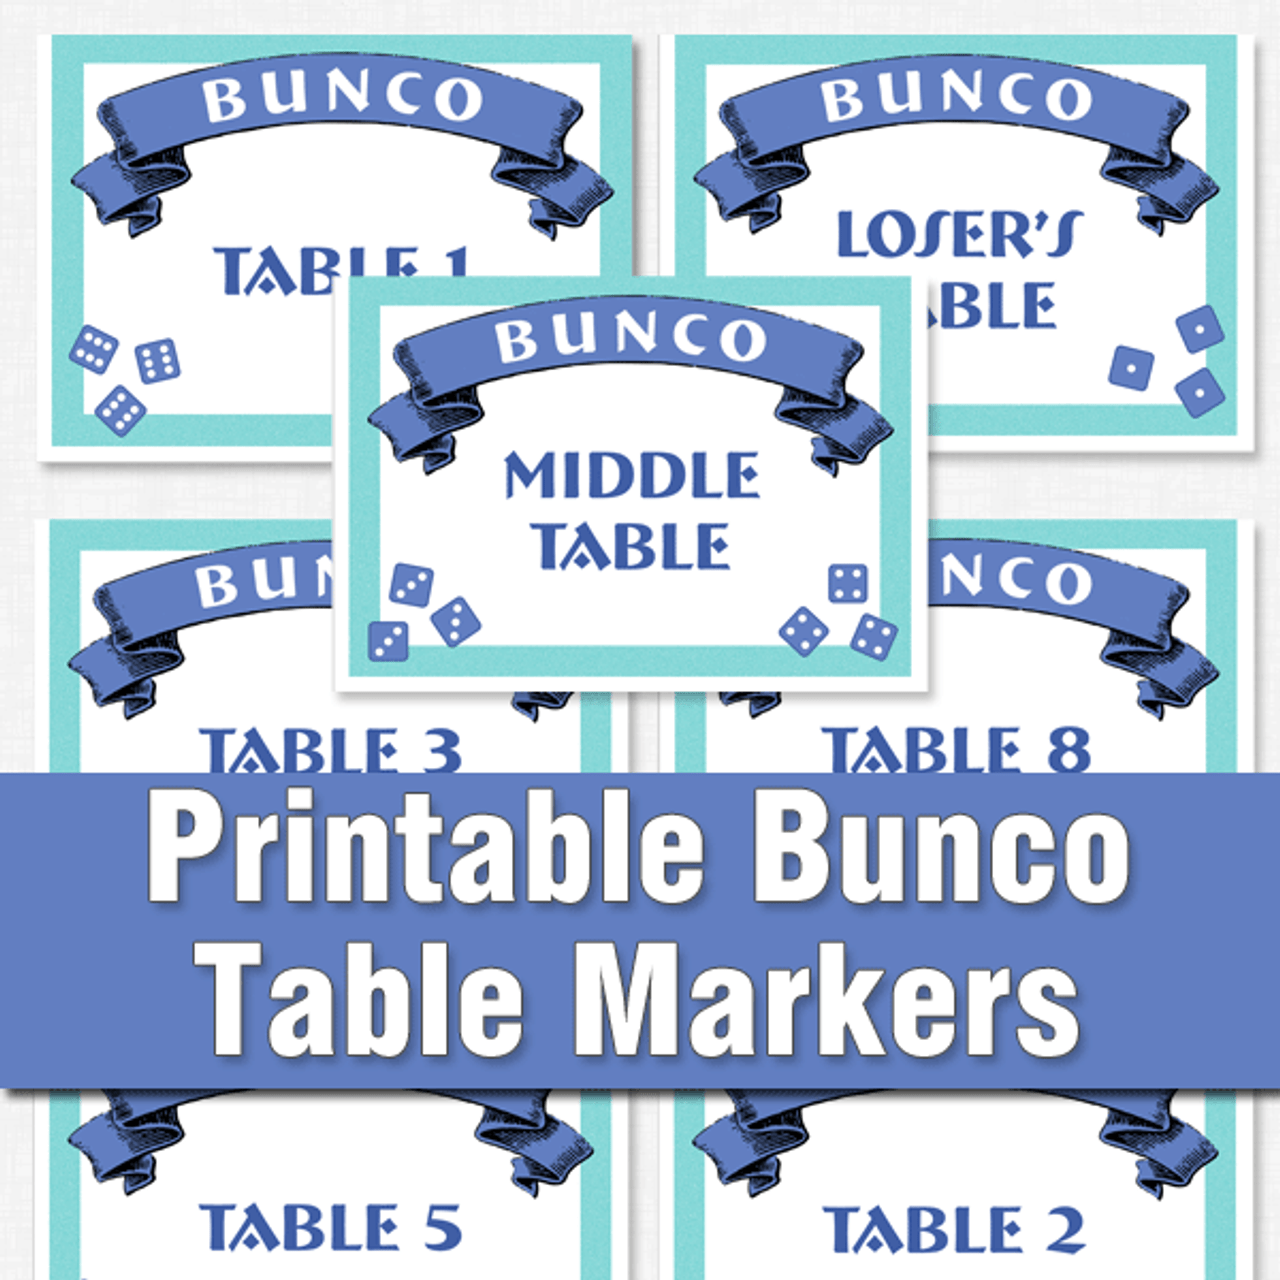 photograph regarding Printable Z Tables titled Printable Bunco Desk Markers